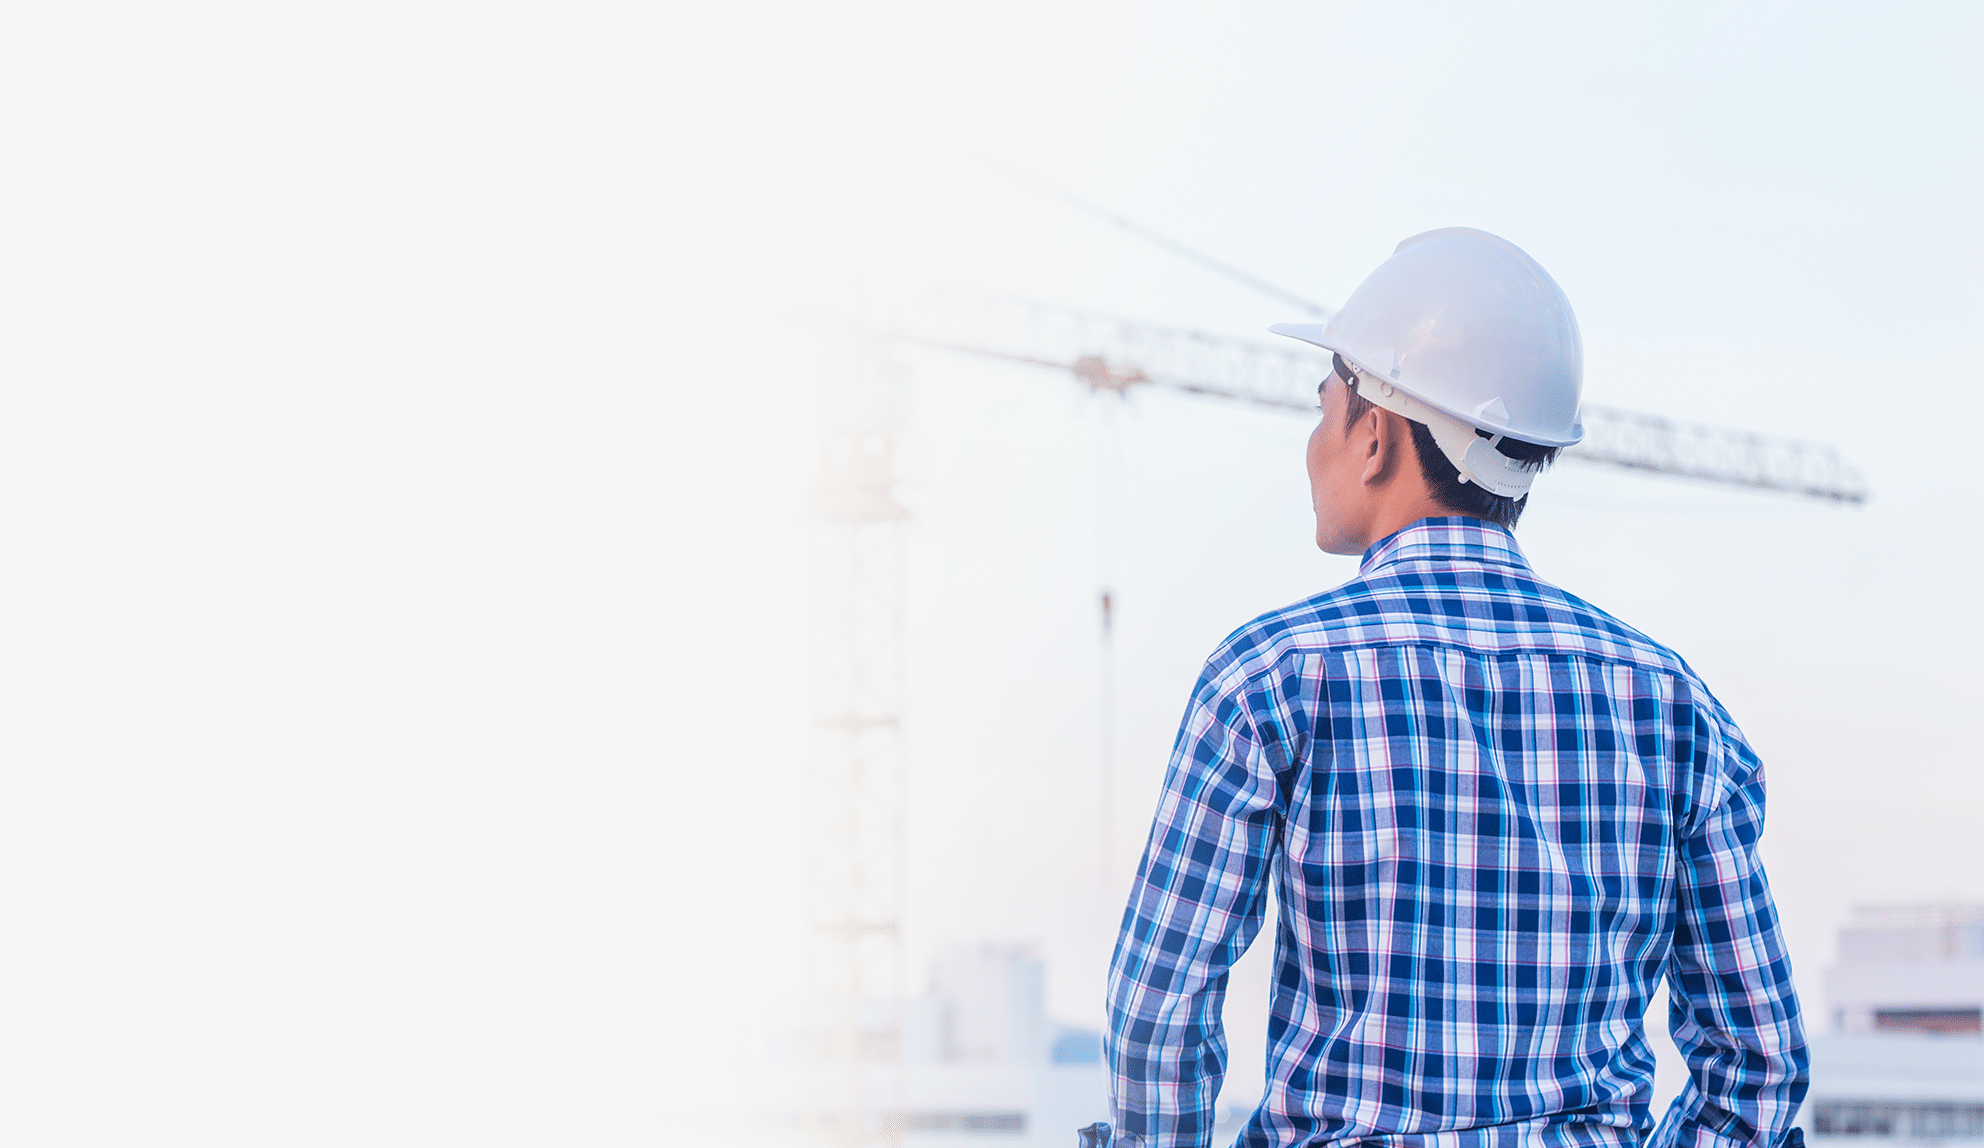 The Construction Industry Scheme is designed to help several trades